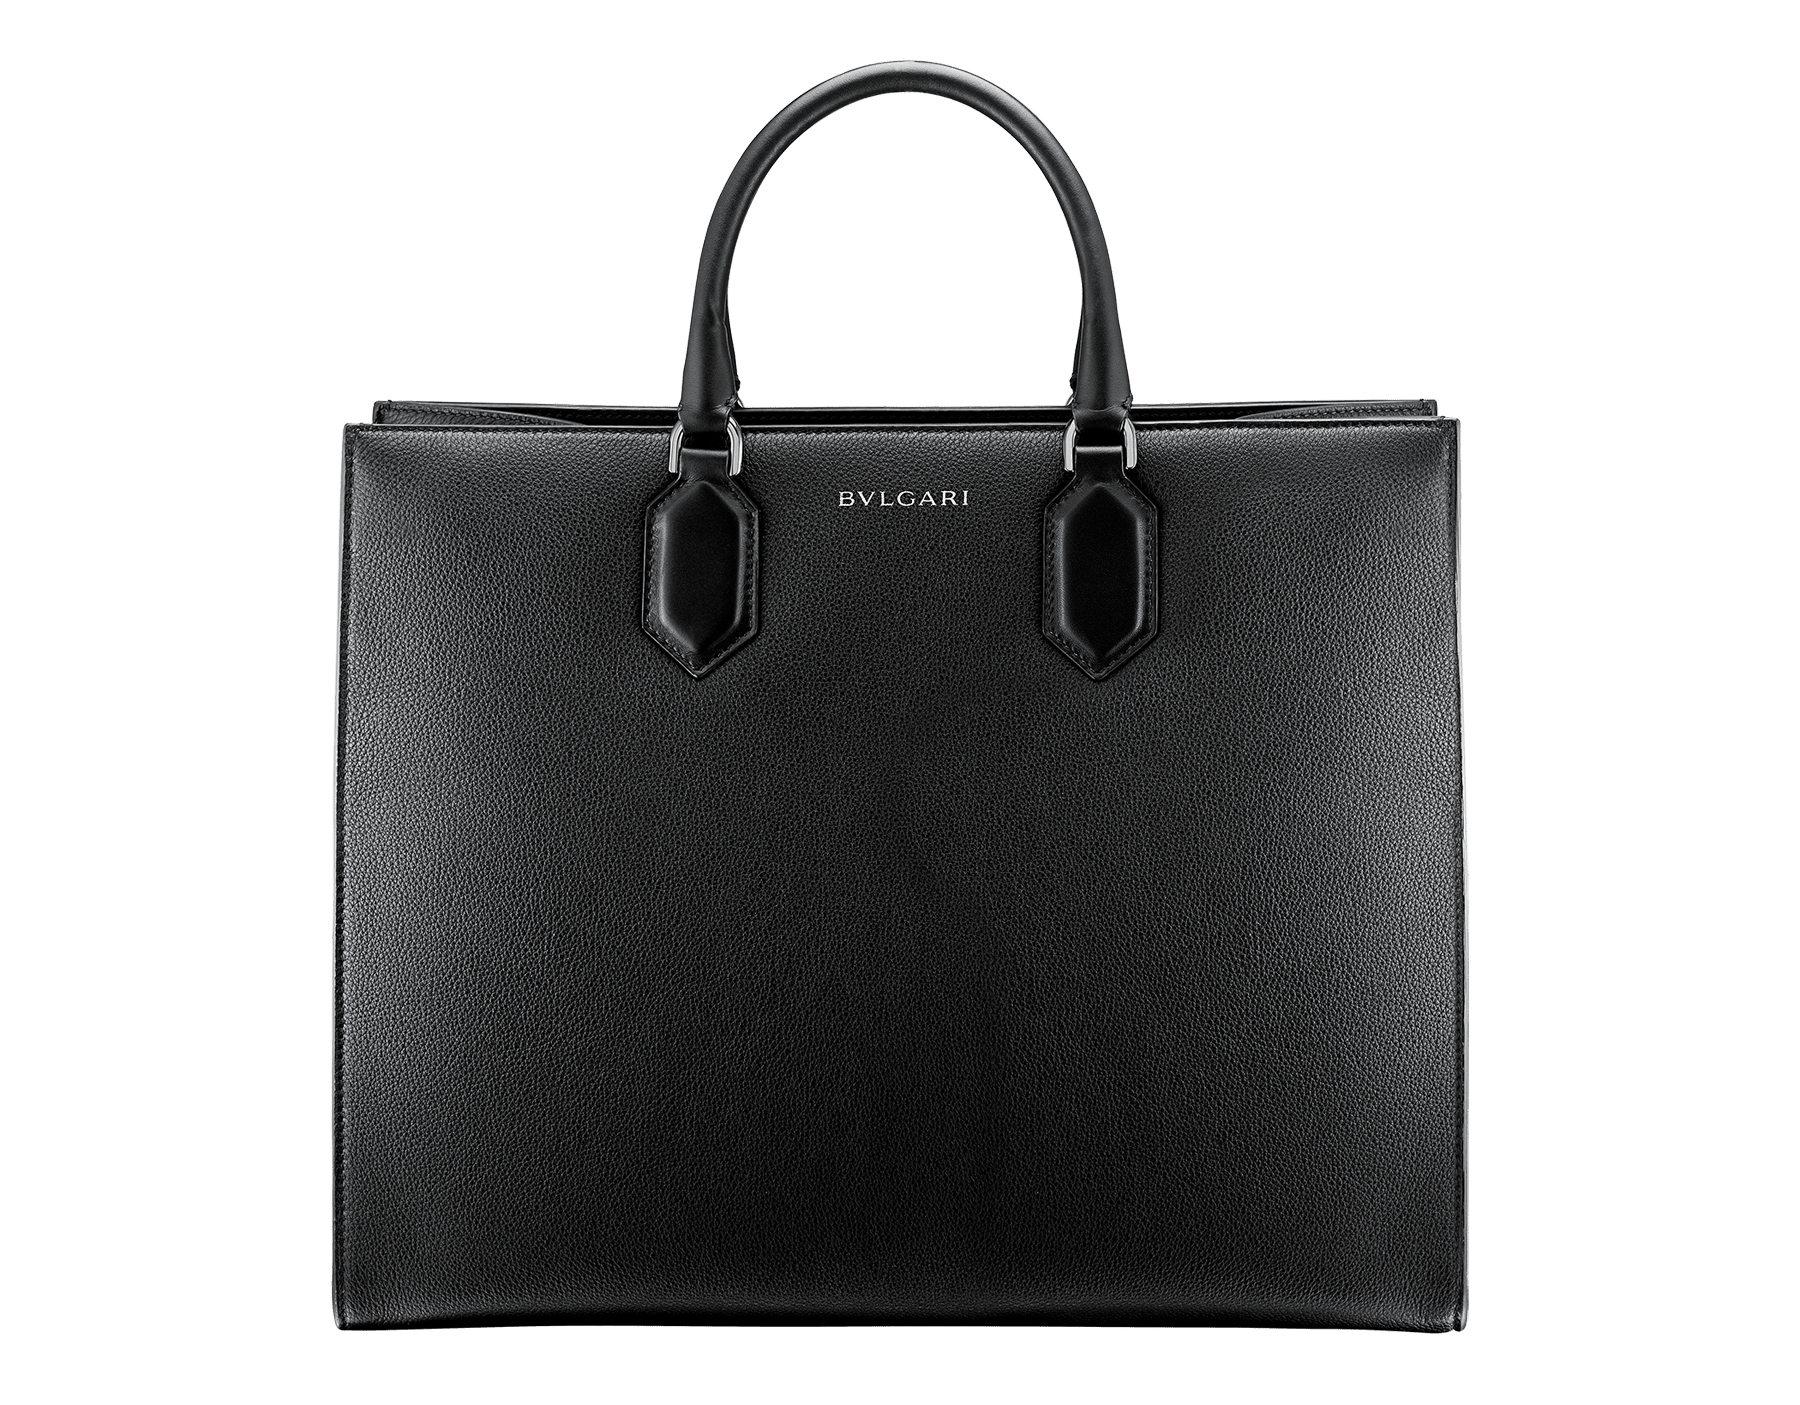 """Bvlgari Logo"" large tote bag in black calf leather, with black grosgrain inner lining. Bvlgari logo featured with dark ruthenium-plated brass chain inserts on the black calf leather. BVL-1160 image 3"